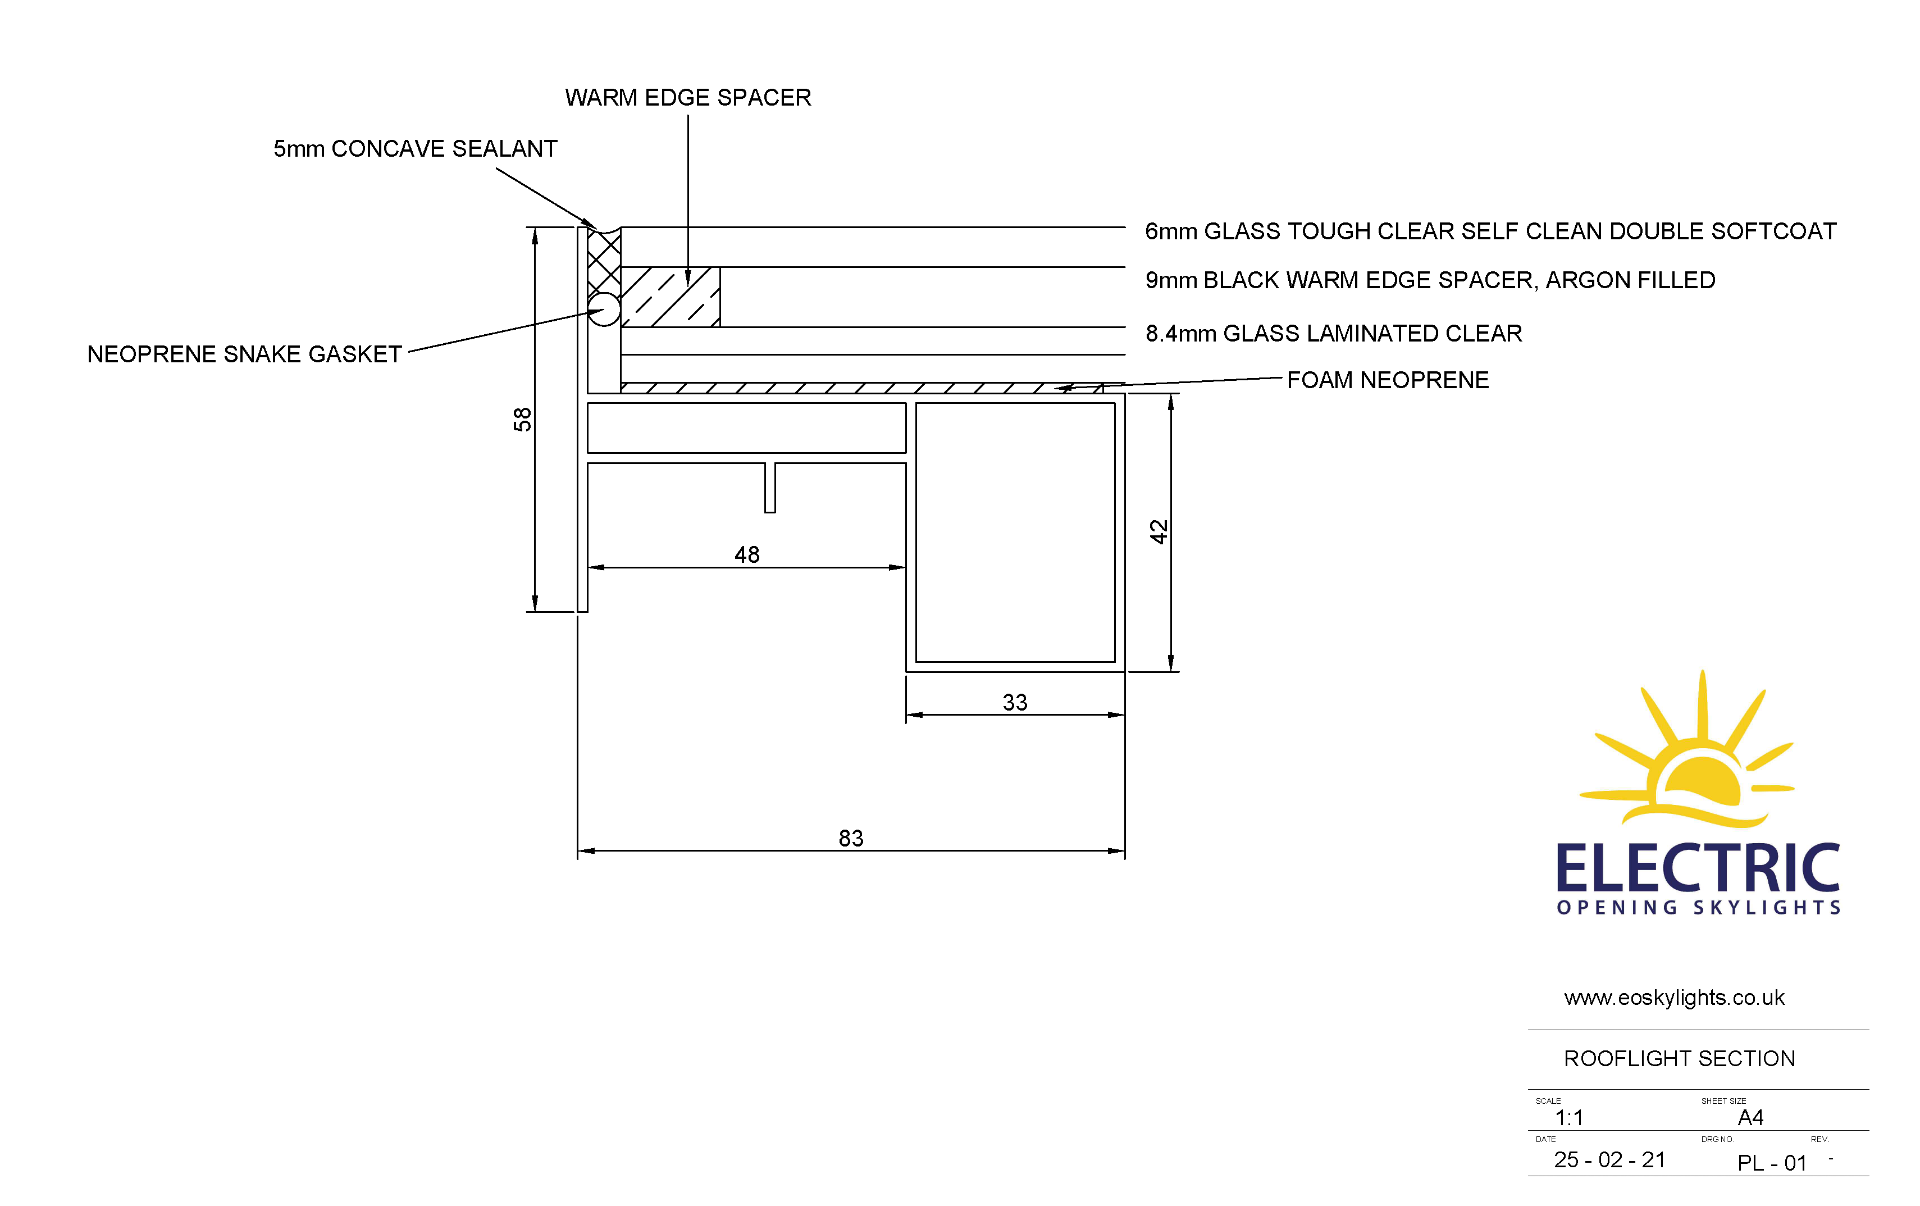 Panoroof (EOS) Electric Opening Skylight 800x1800mm - Aluminiun Frame Double Glazed Laminated Self- - Image 6 of 6